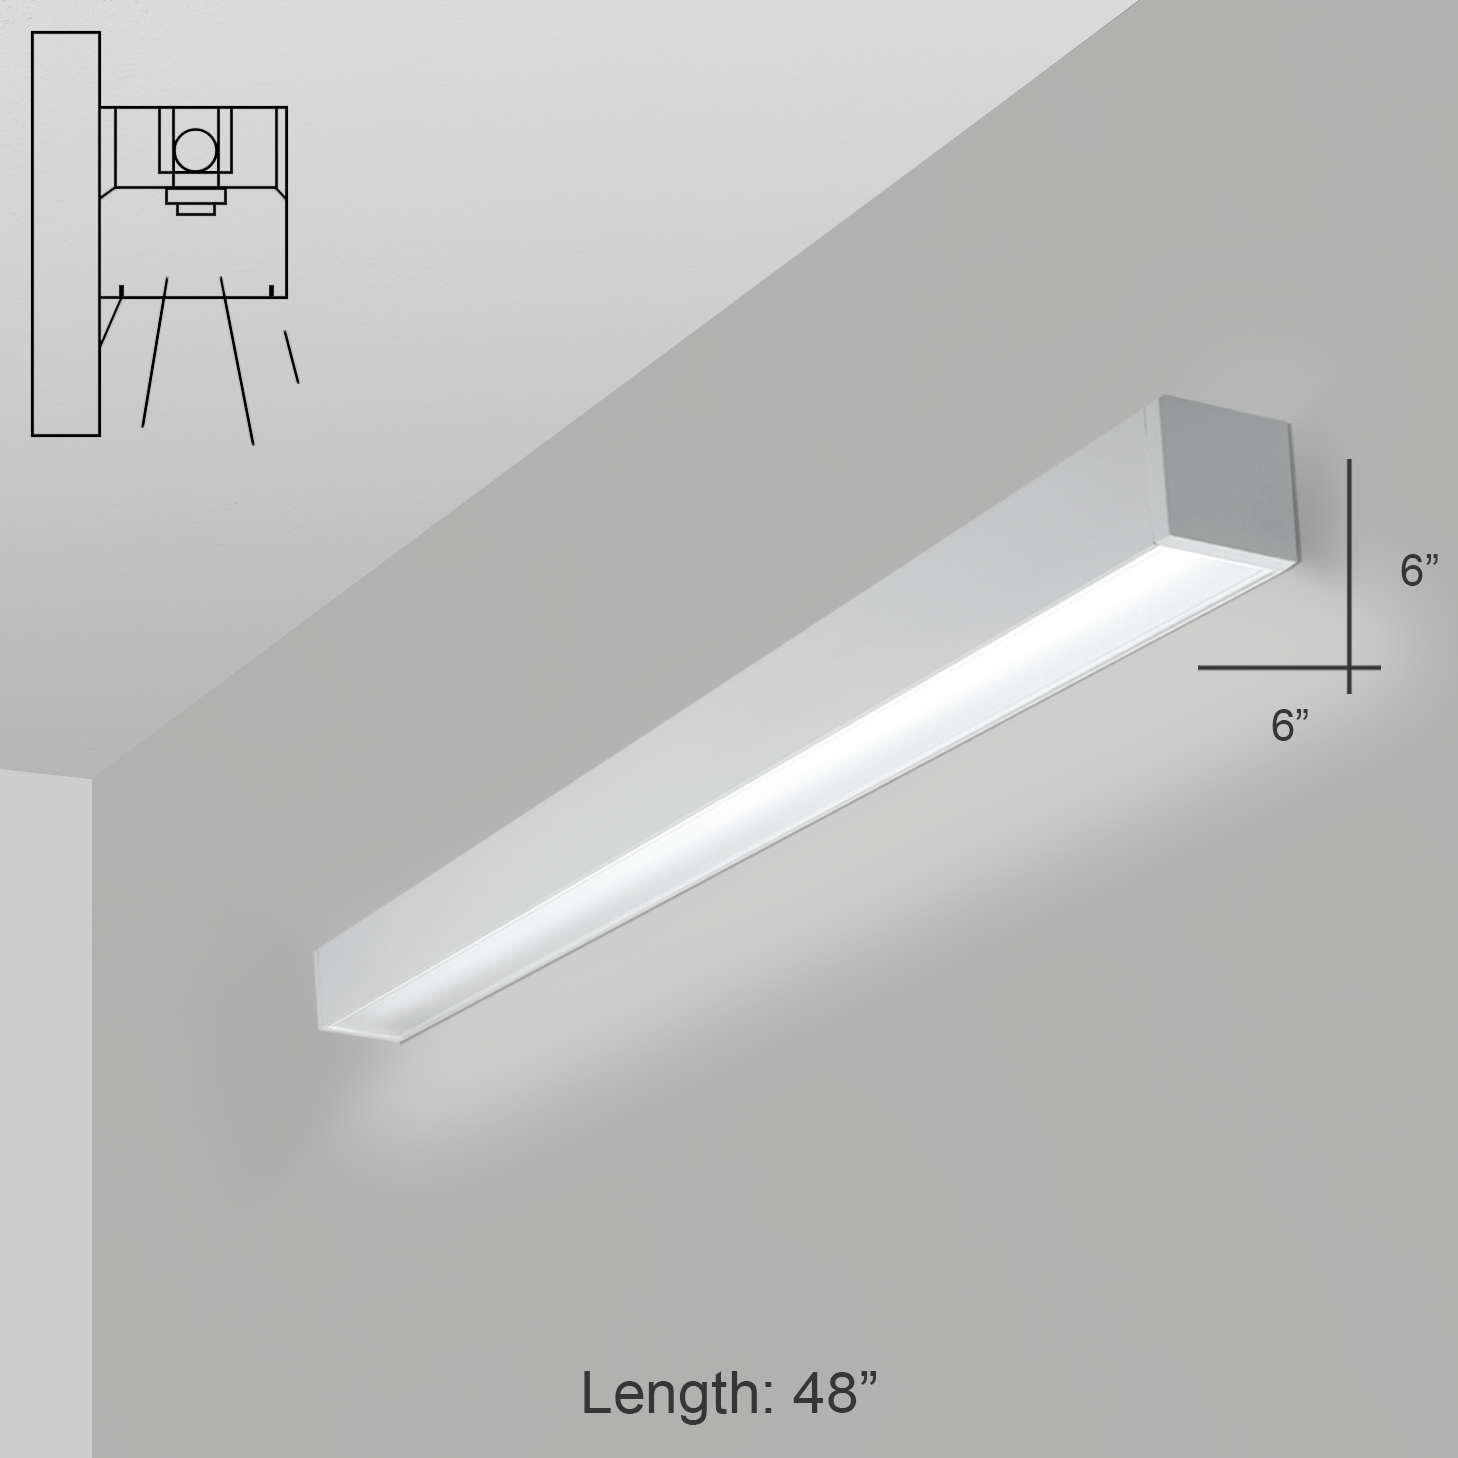 Alcon Lighting 12200 6 W 4 Rft Series Architectural Led Foot Linear Wall Mount Direct Light Fixture